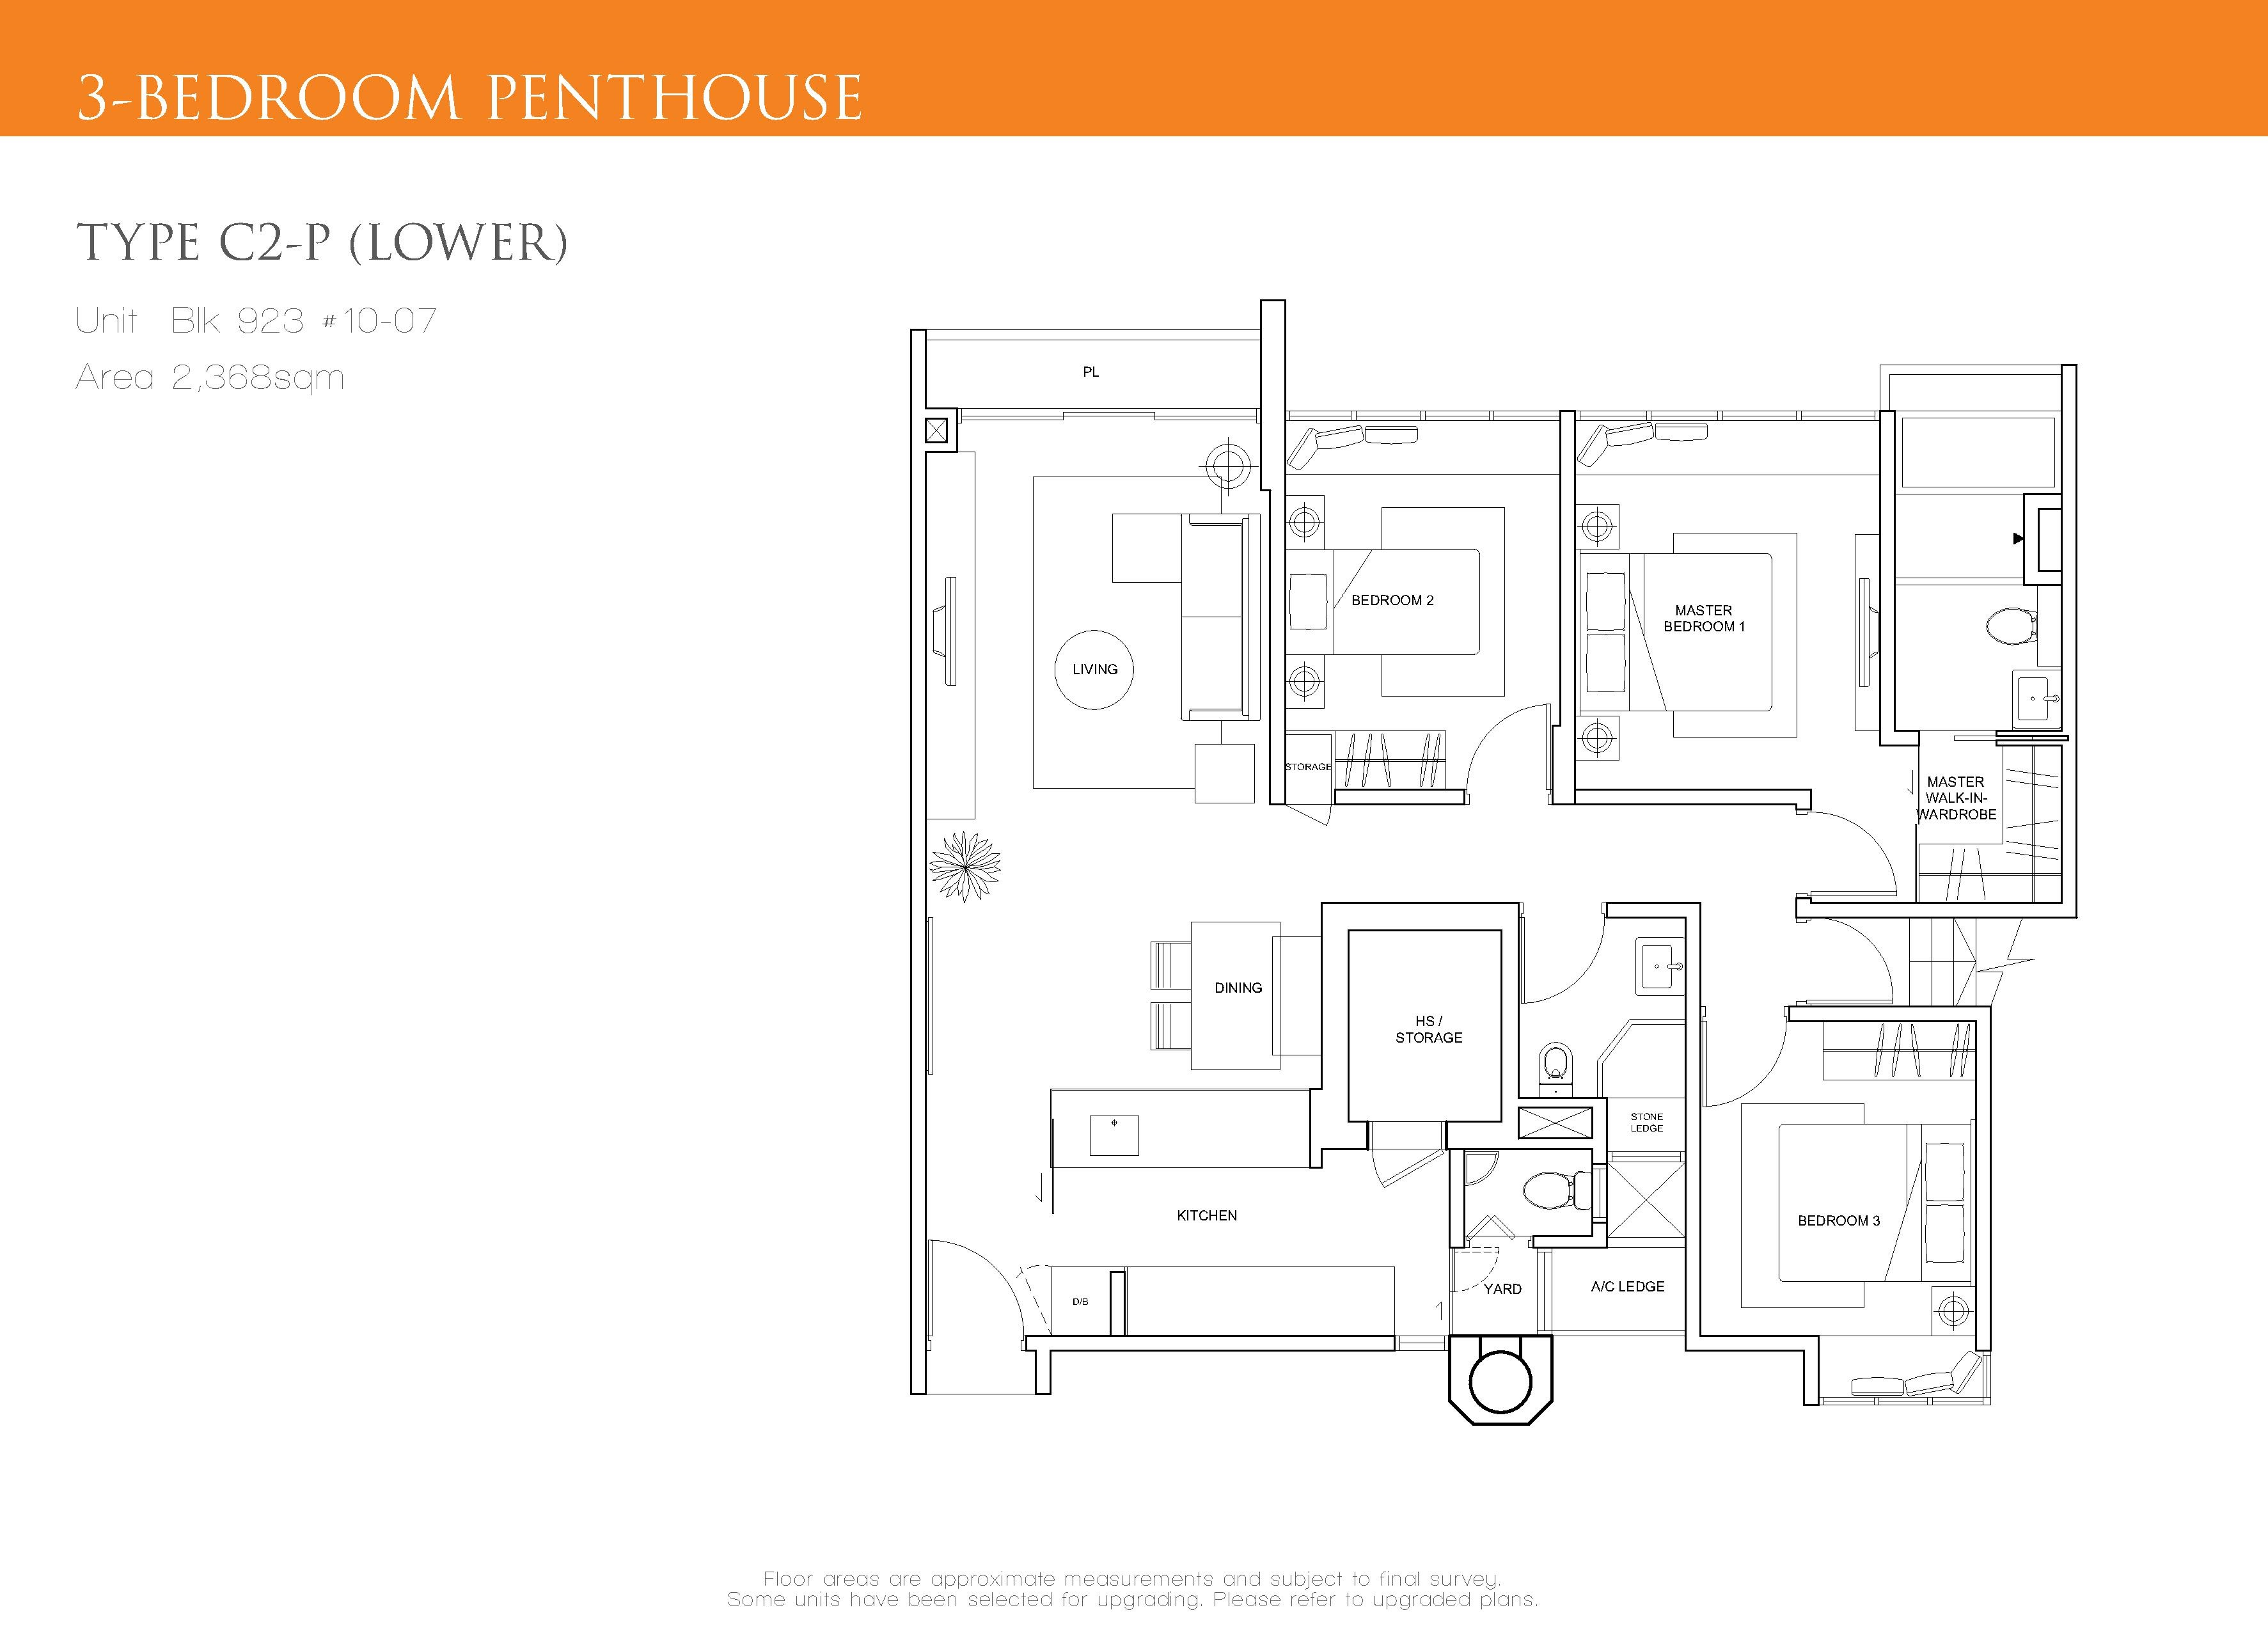 The Cascadia 3 Bedroom Penthouse Floor Plan Type C2-P(Lower)